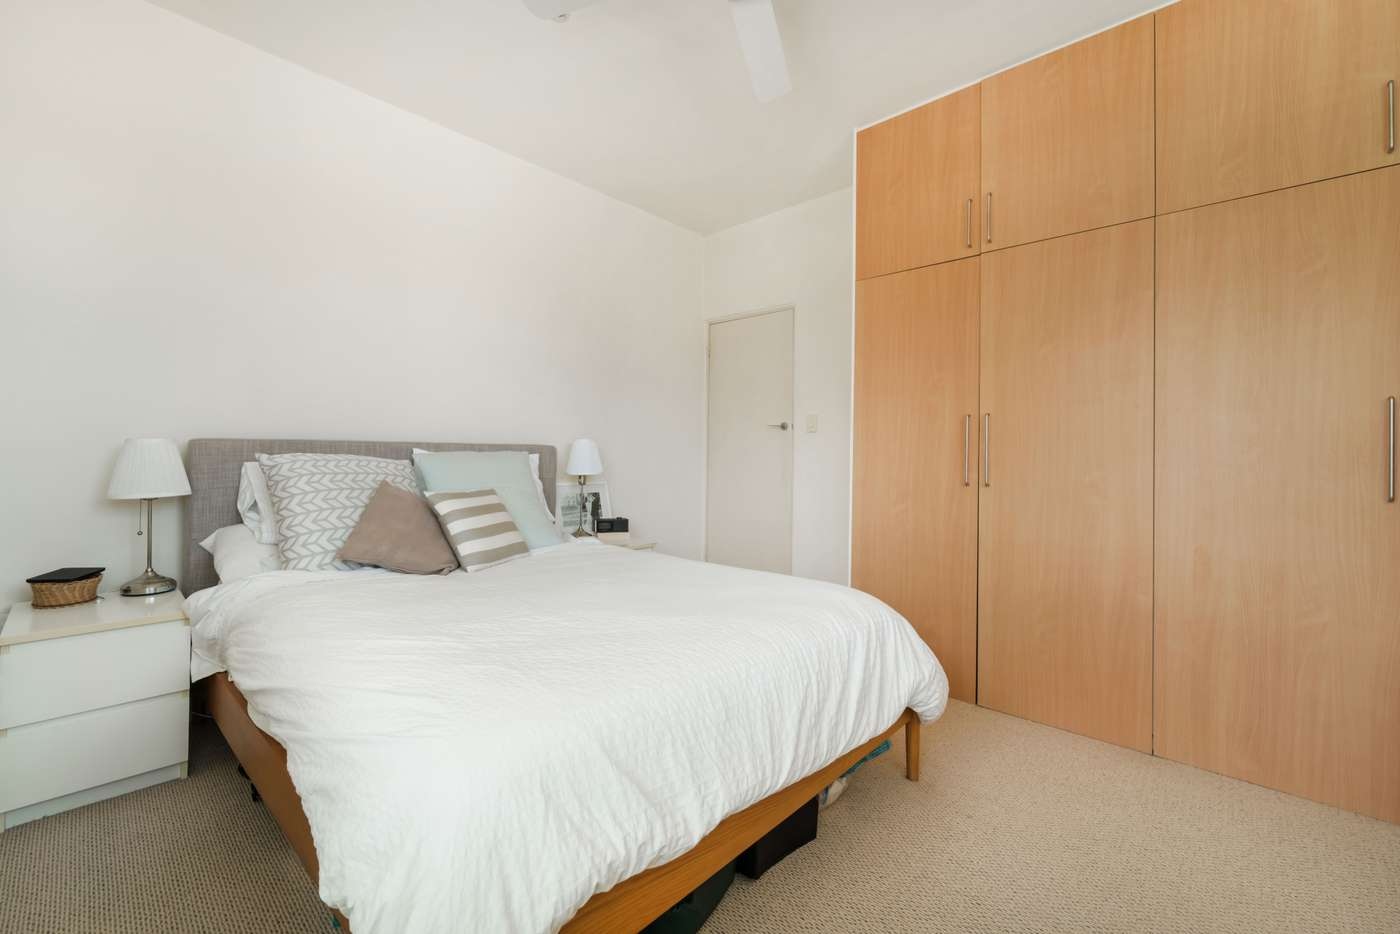 Main view of Homely apartment listing, 11/26 Bennett Street, Neutral Bay NSW 2089